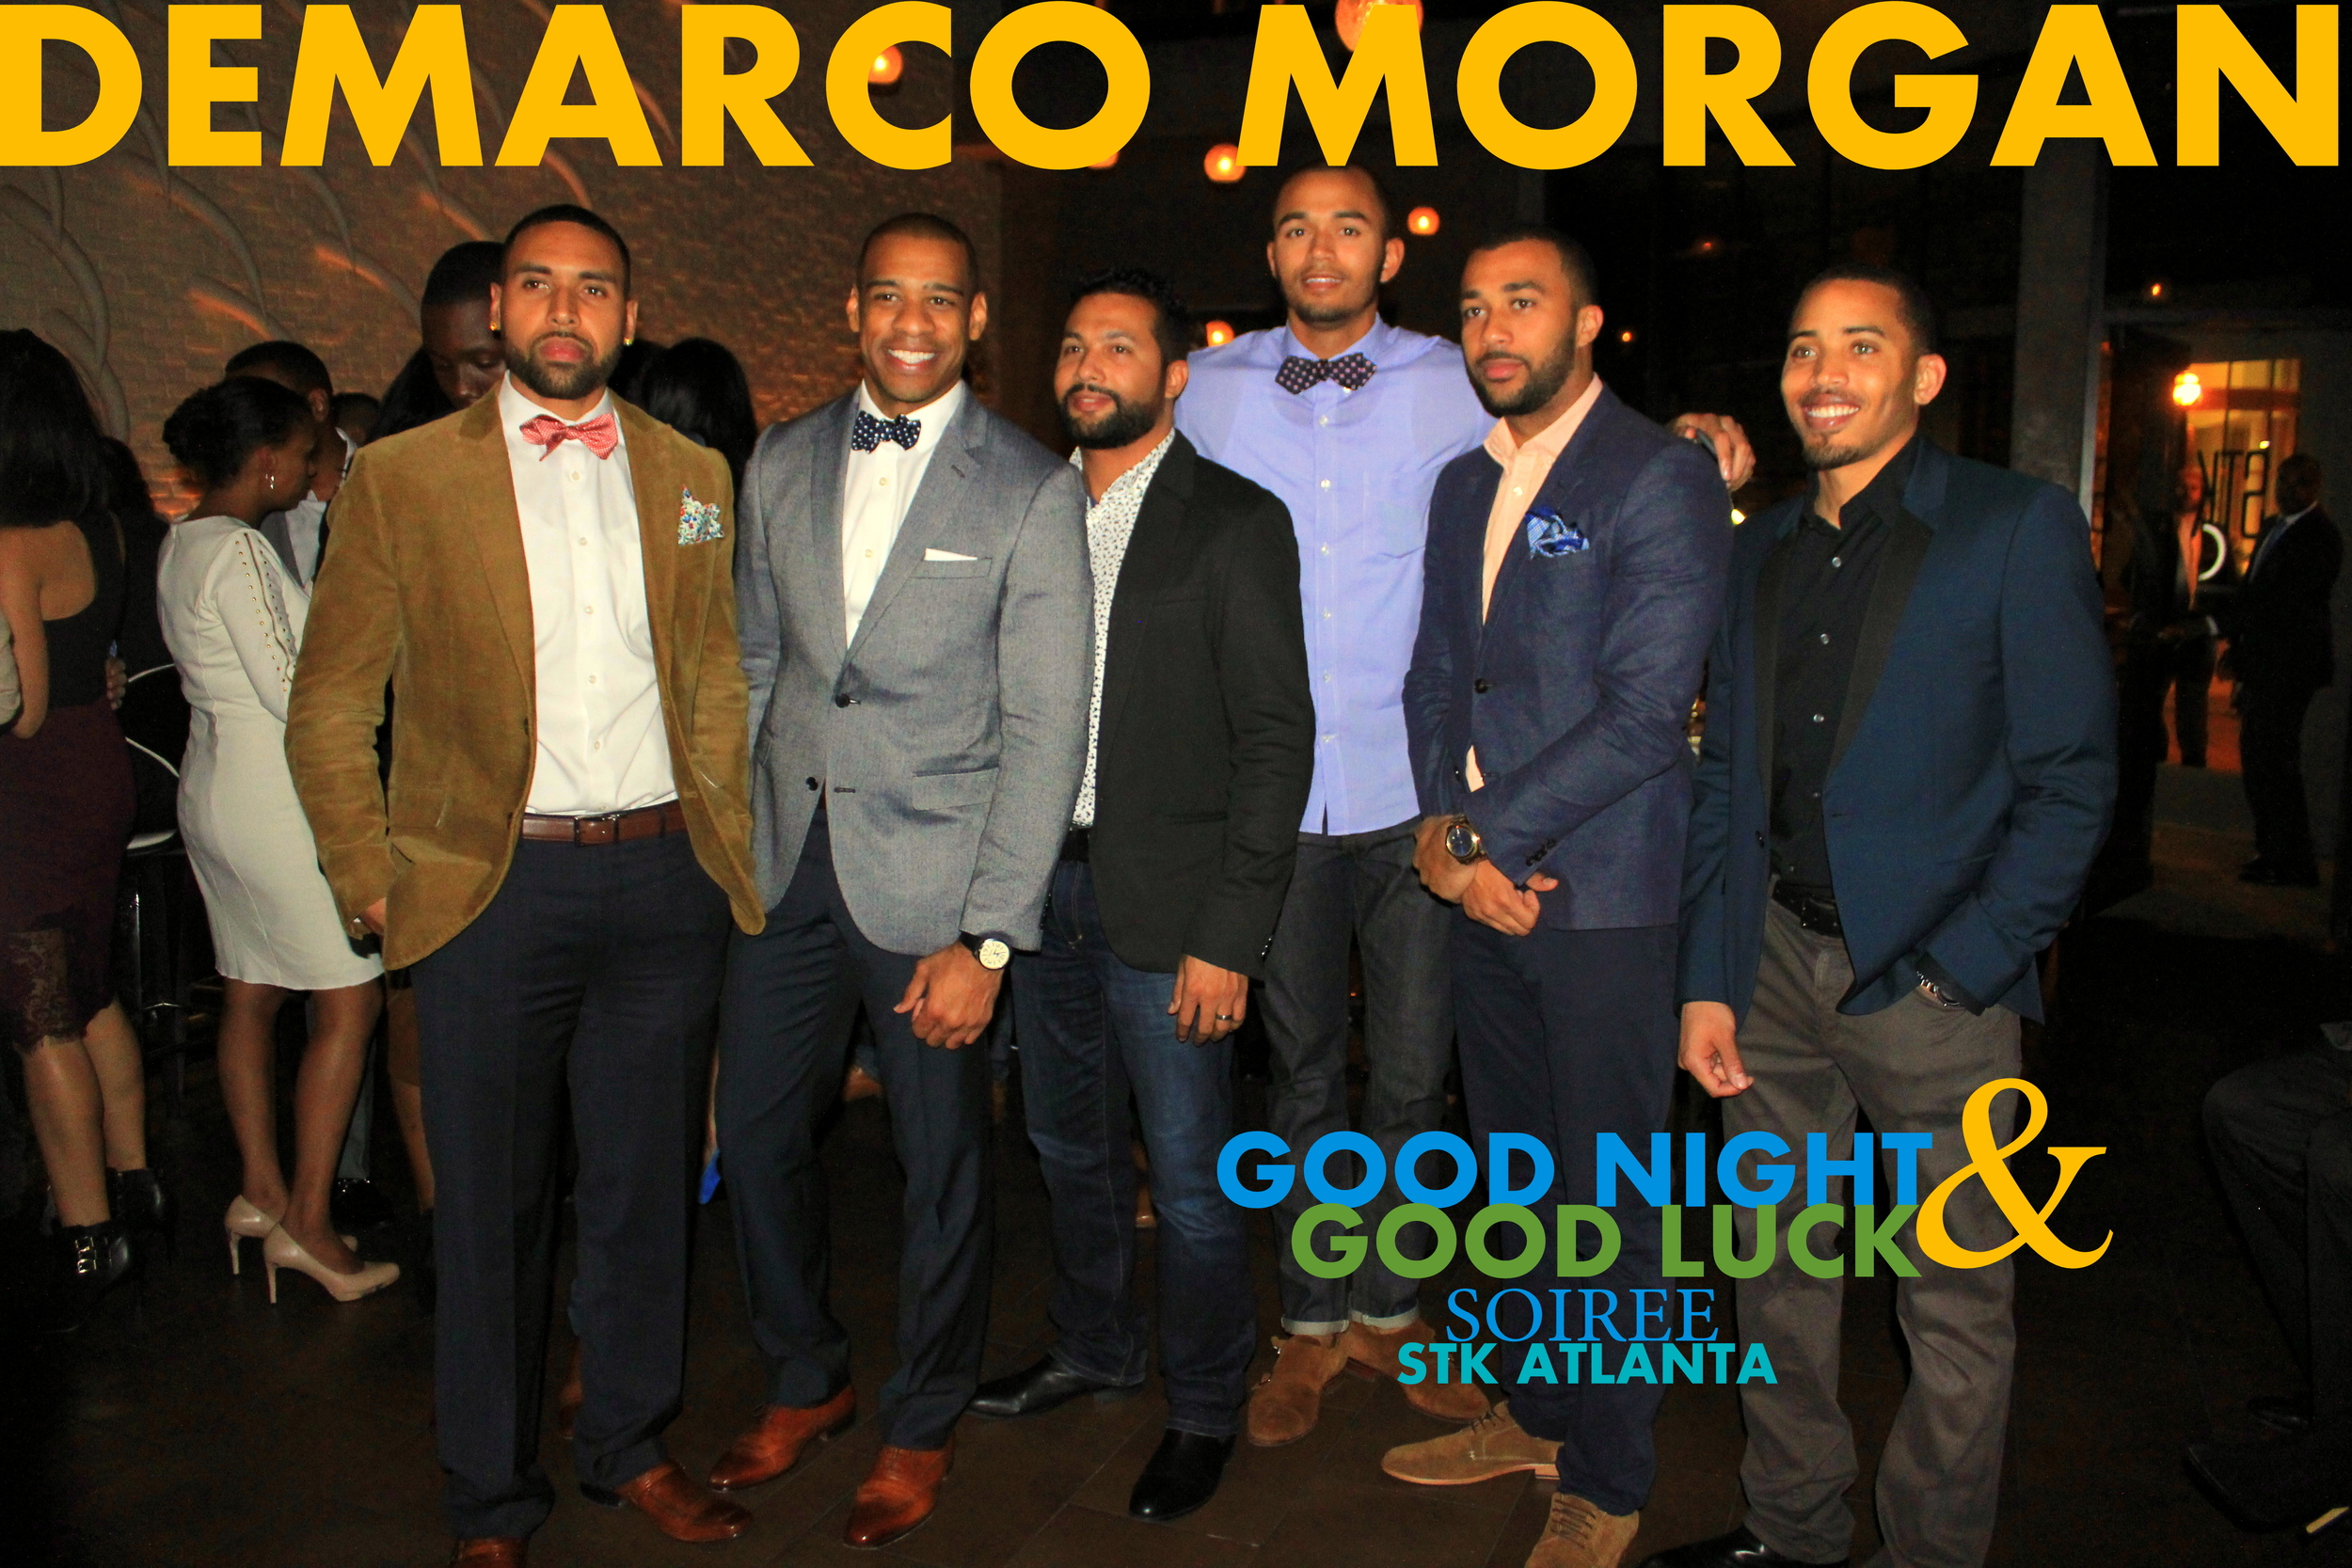 nbc news anchor demarco morgan striking a pose with his guests at his good night and good luck soiree | stk Atlanta before he takes his seat as the new correspondent for cbs new York!   photos from the soiree !